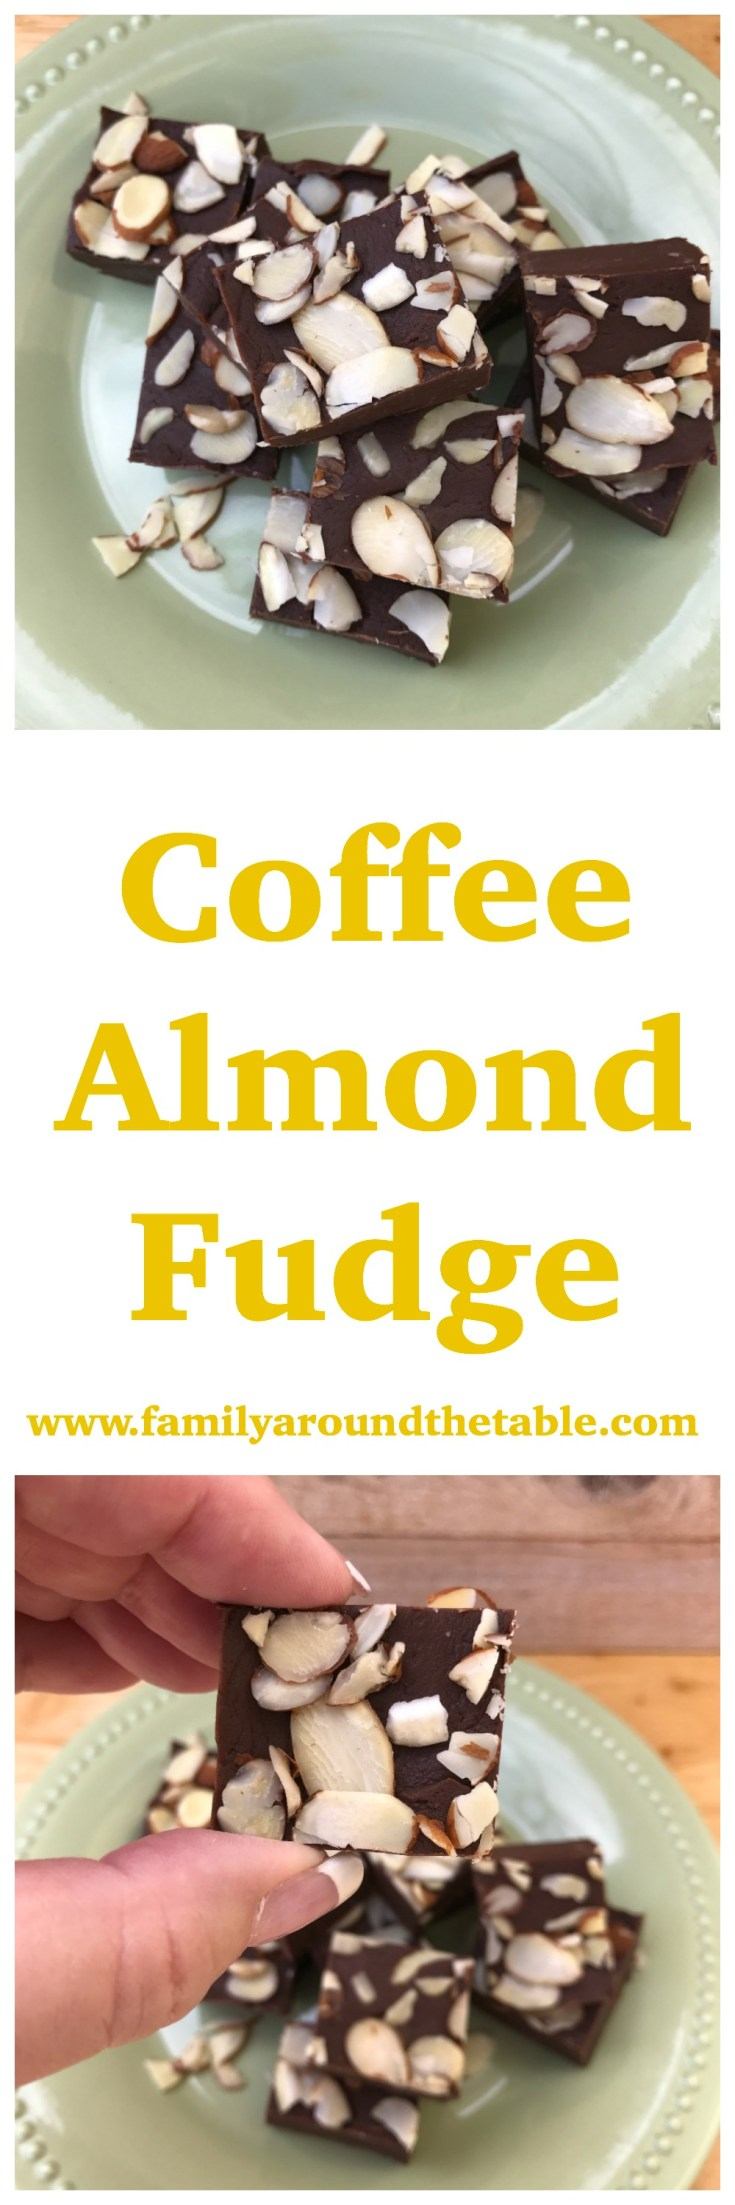 Coffee almond fudge makes a delicious dessert table treat or party favor for guests.